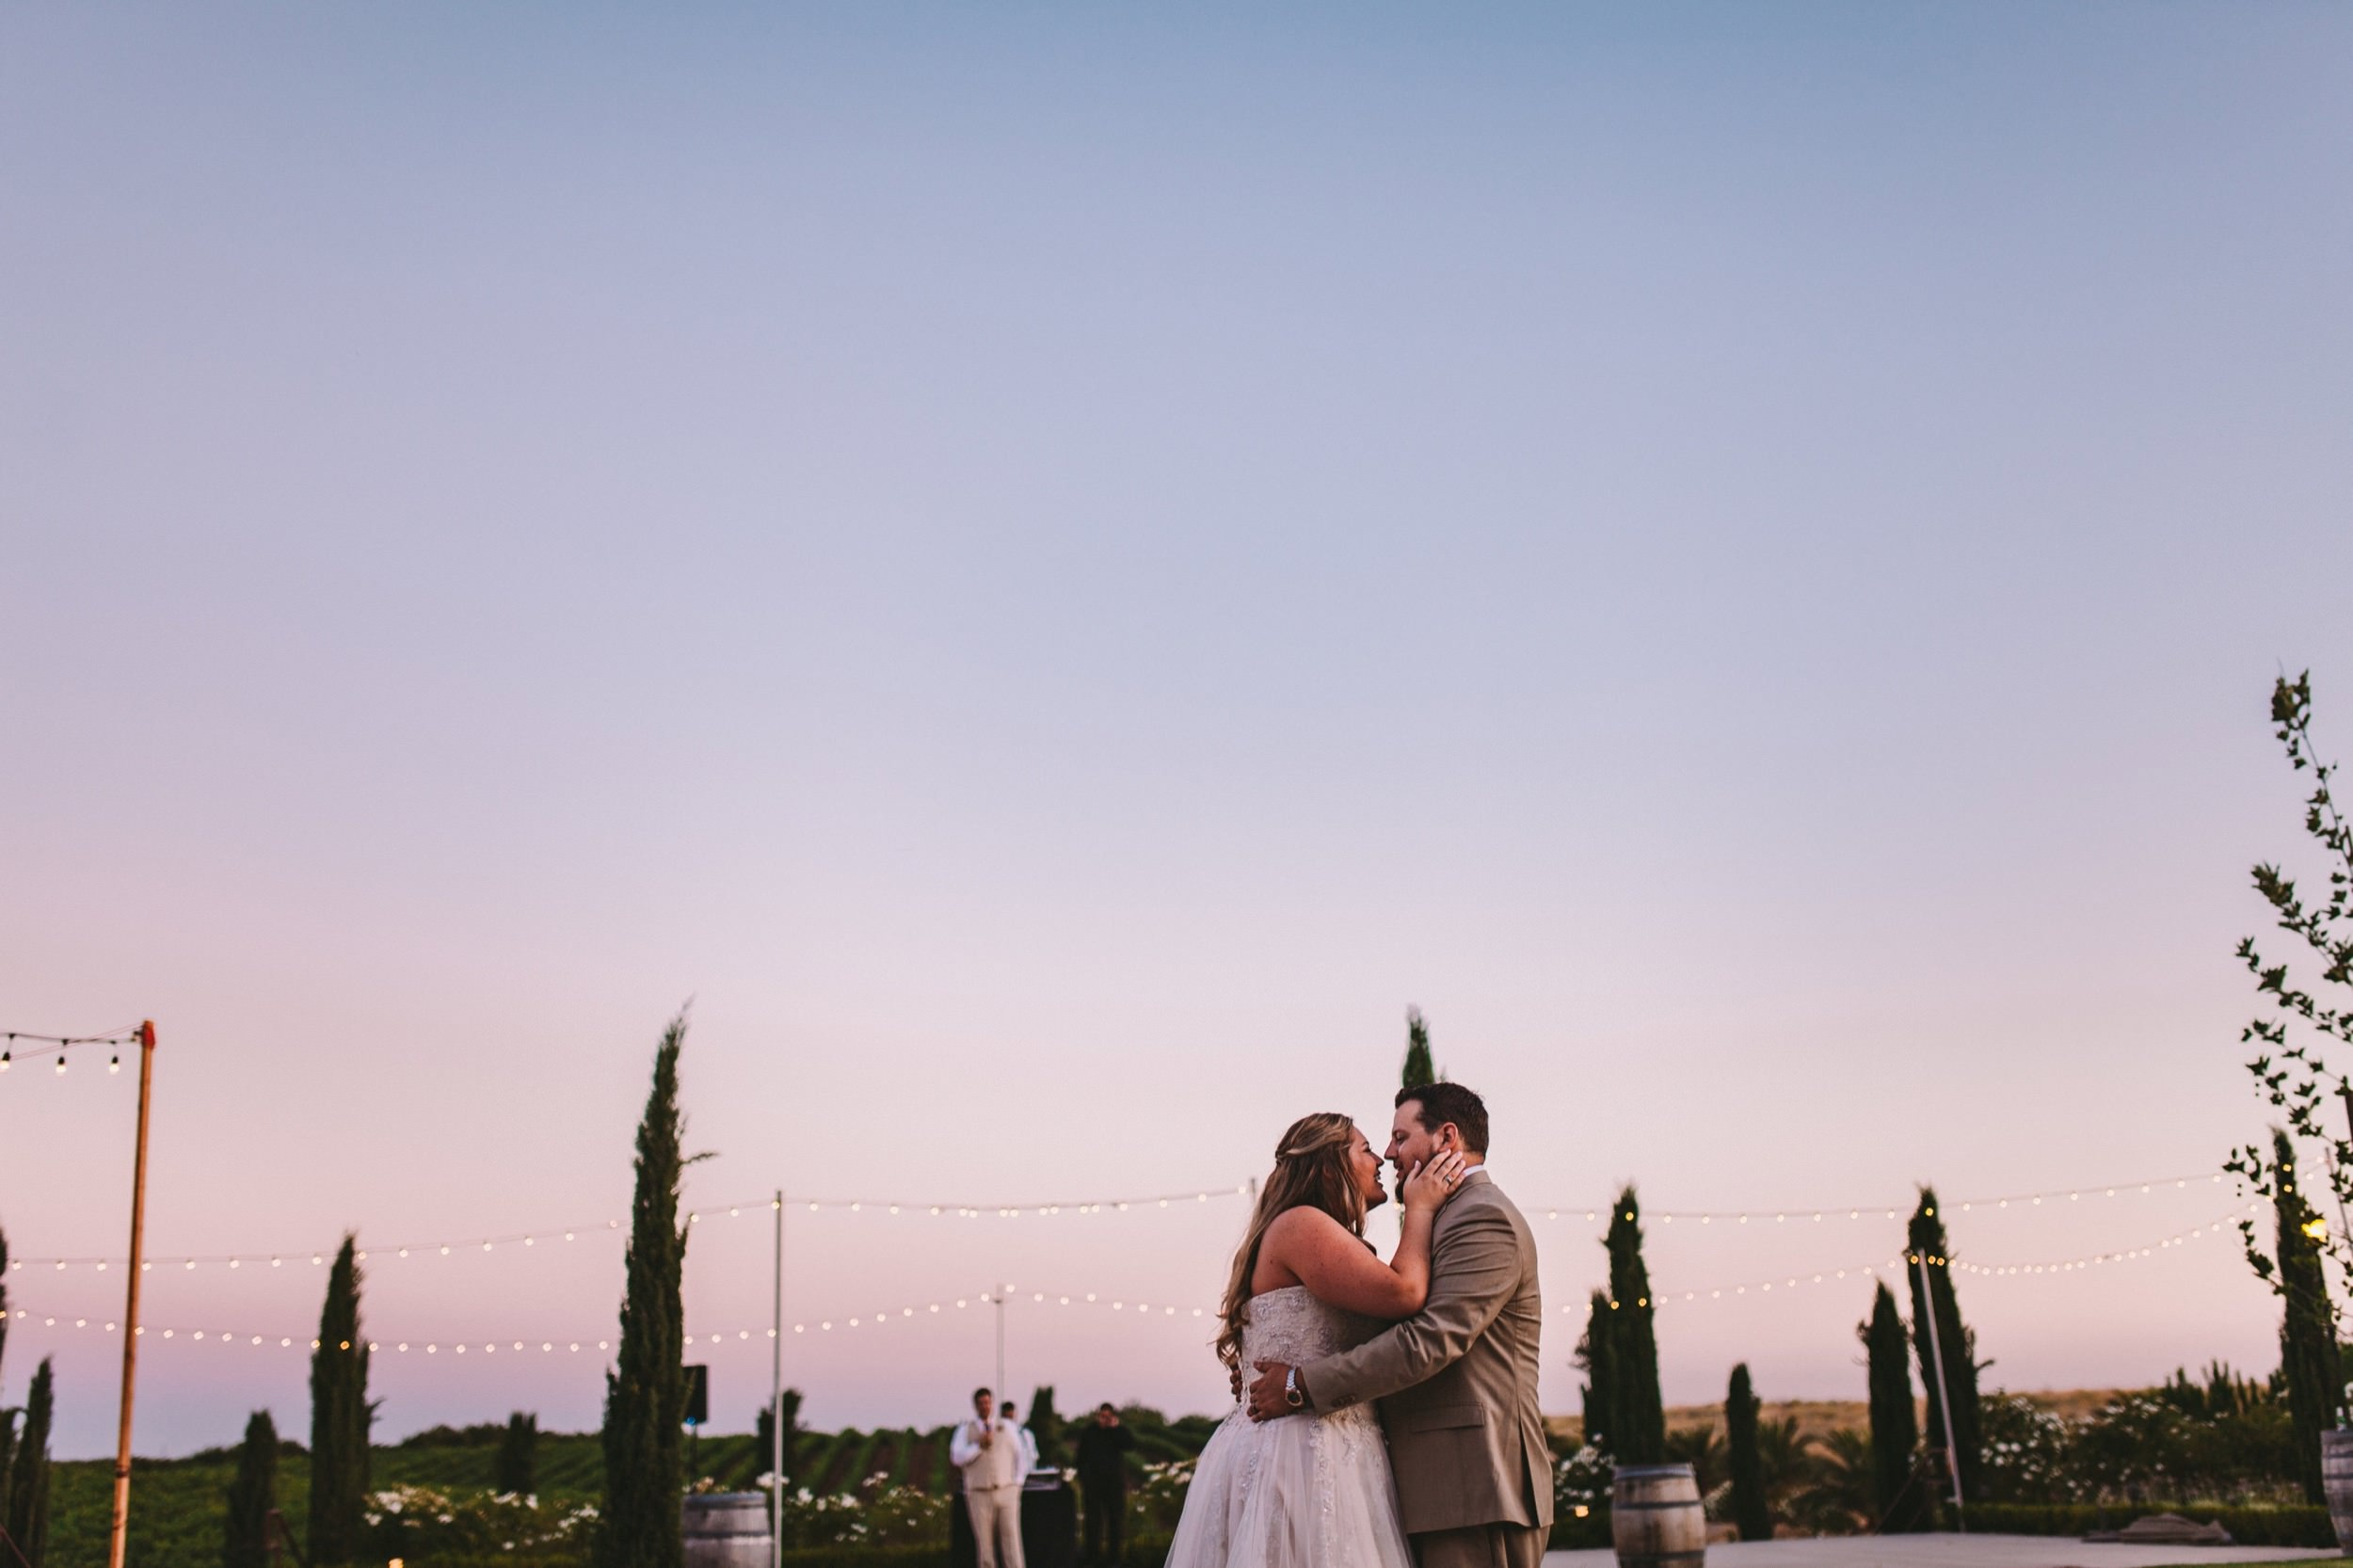 Sunset & Dusk Bride & Groom First Dance at Toca Madera Winery Fresno